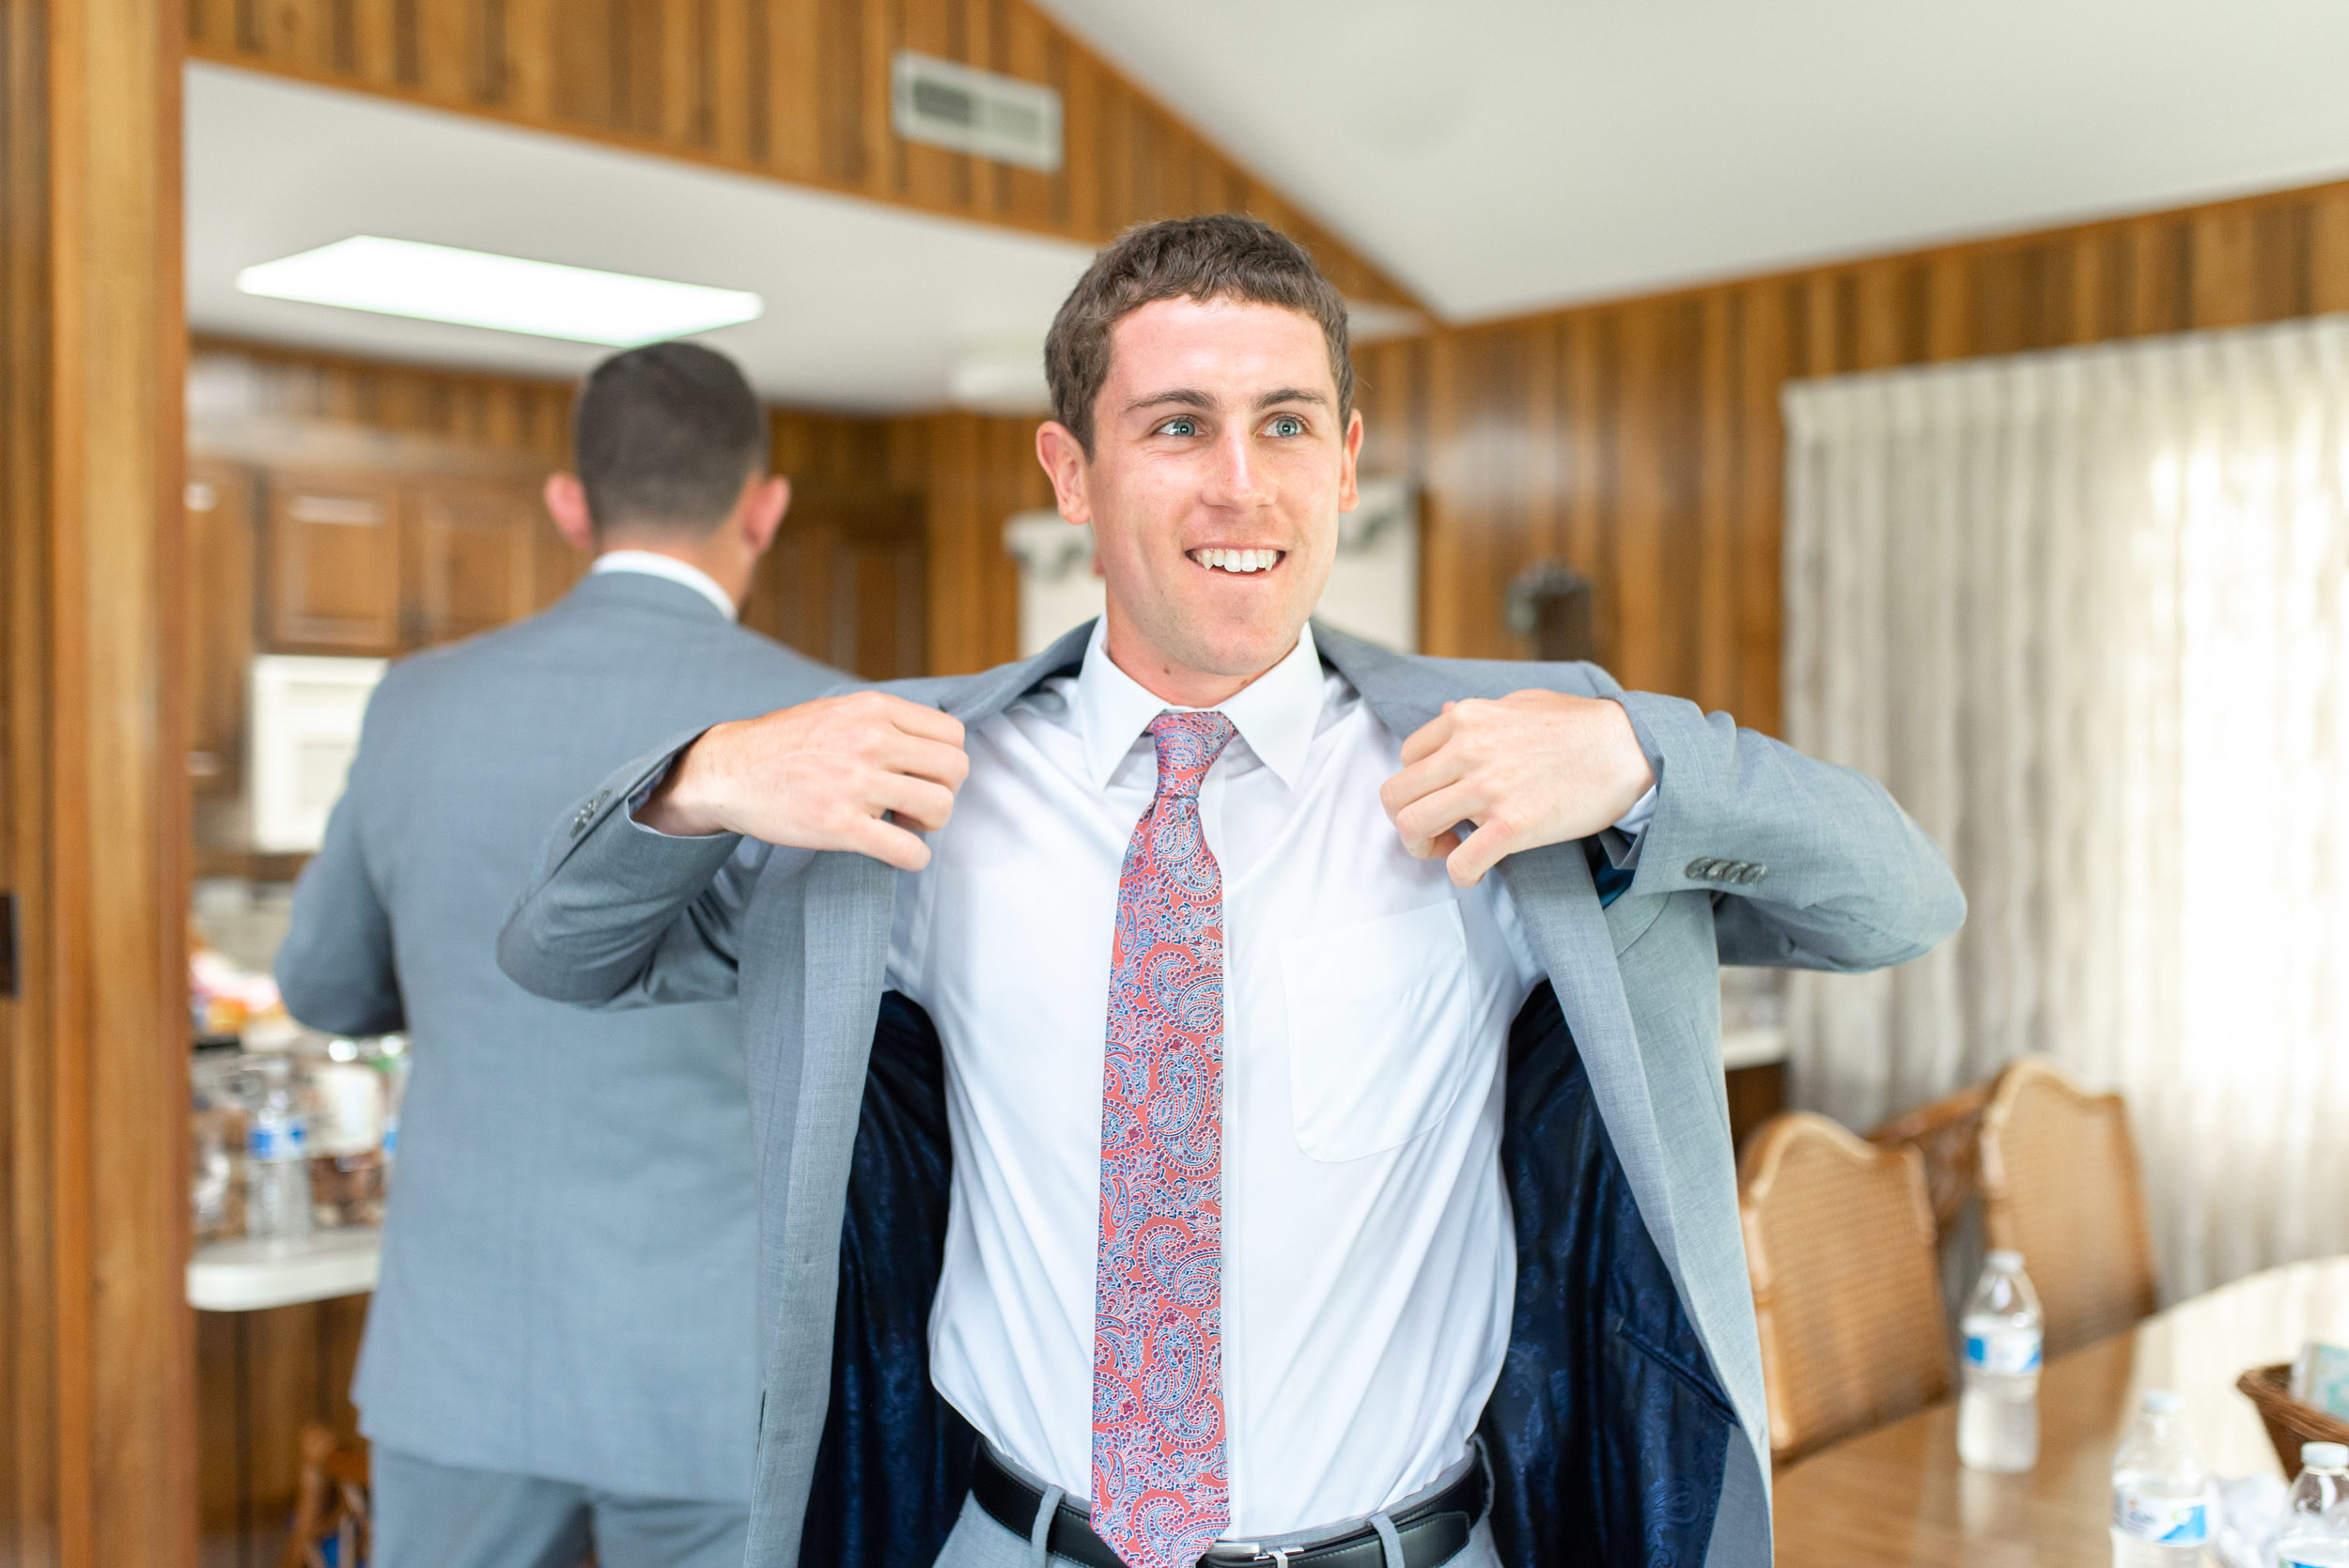 Groom putting on light gray jacket with purple tie for beach wedding